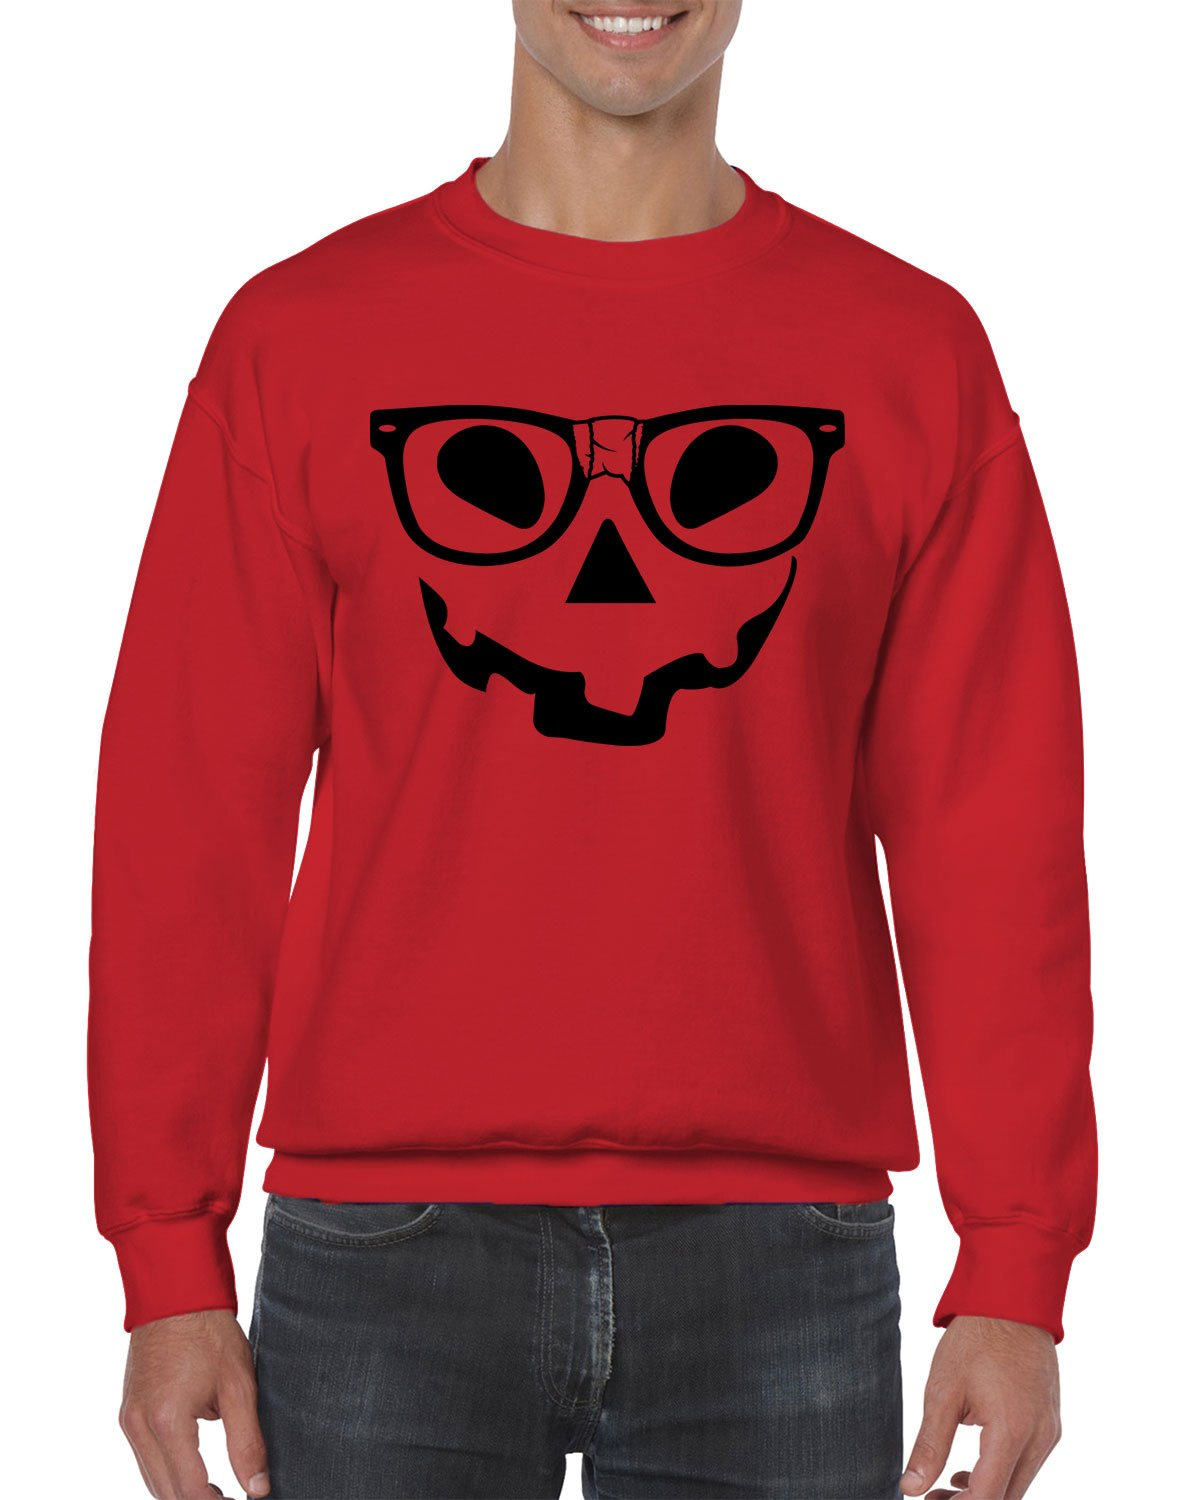 Pumpkin Face With Nerdy Glasses Crewneck Sweater, SpiritForged Apparel, Red Small